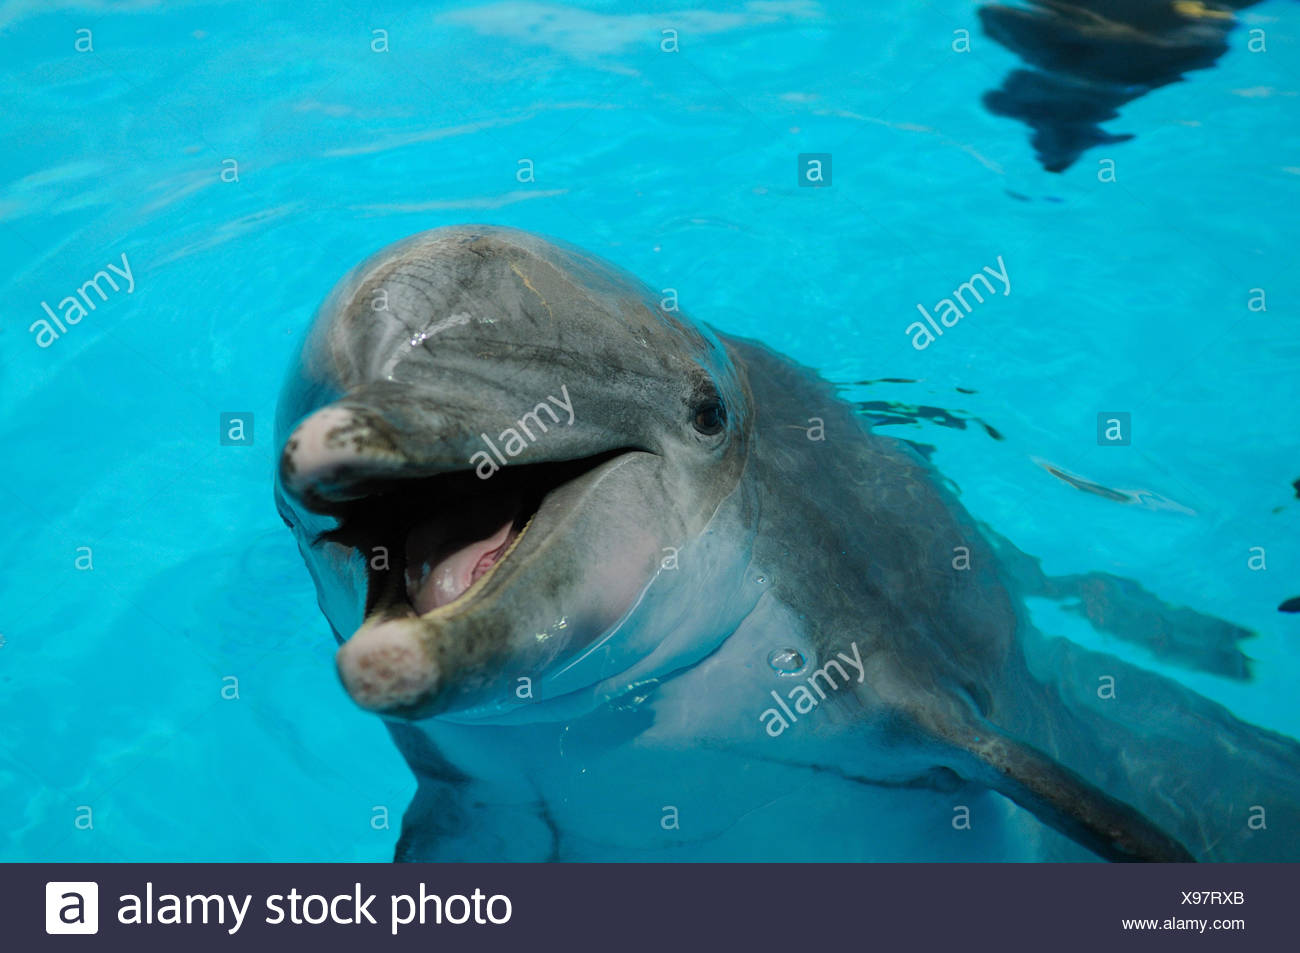 Common bottlenose dolphin, Tursiops truncatus, portrait, water, front view, Looking at camera, focus on the foreground, Stock Photo